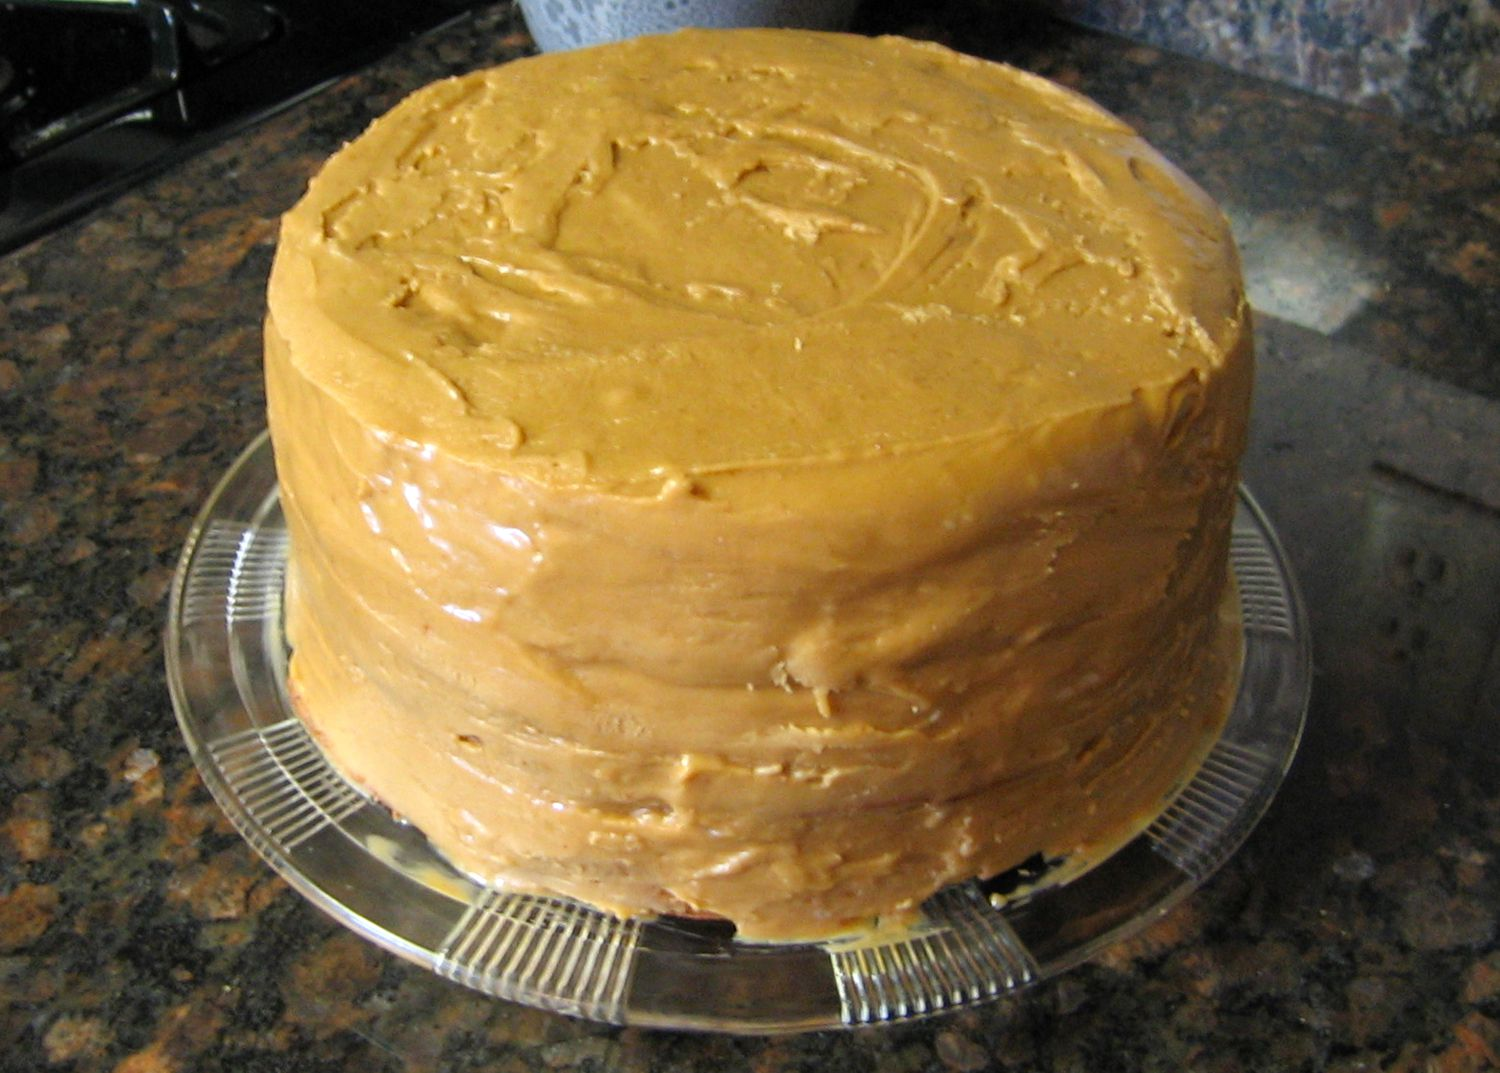 Shuman S Bakery Jelly Cake Recipe: Cooked Caramel Frosting Recipe